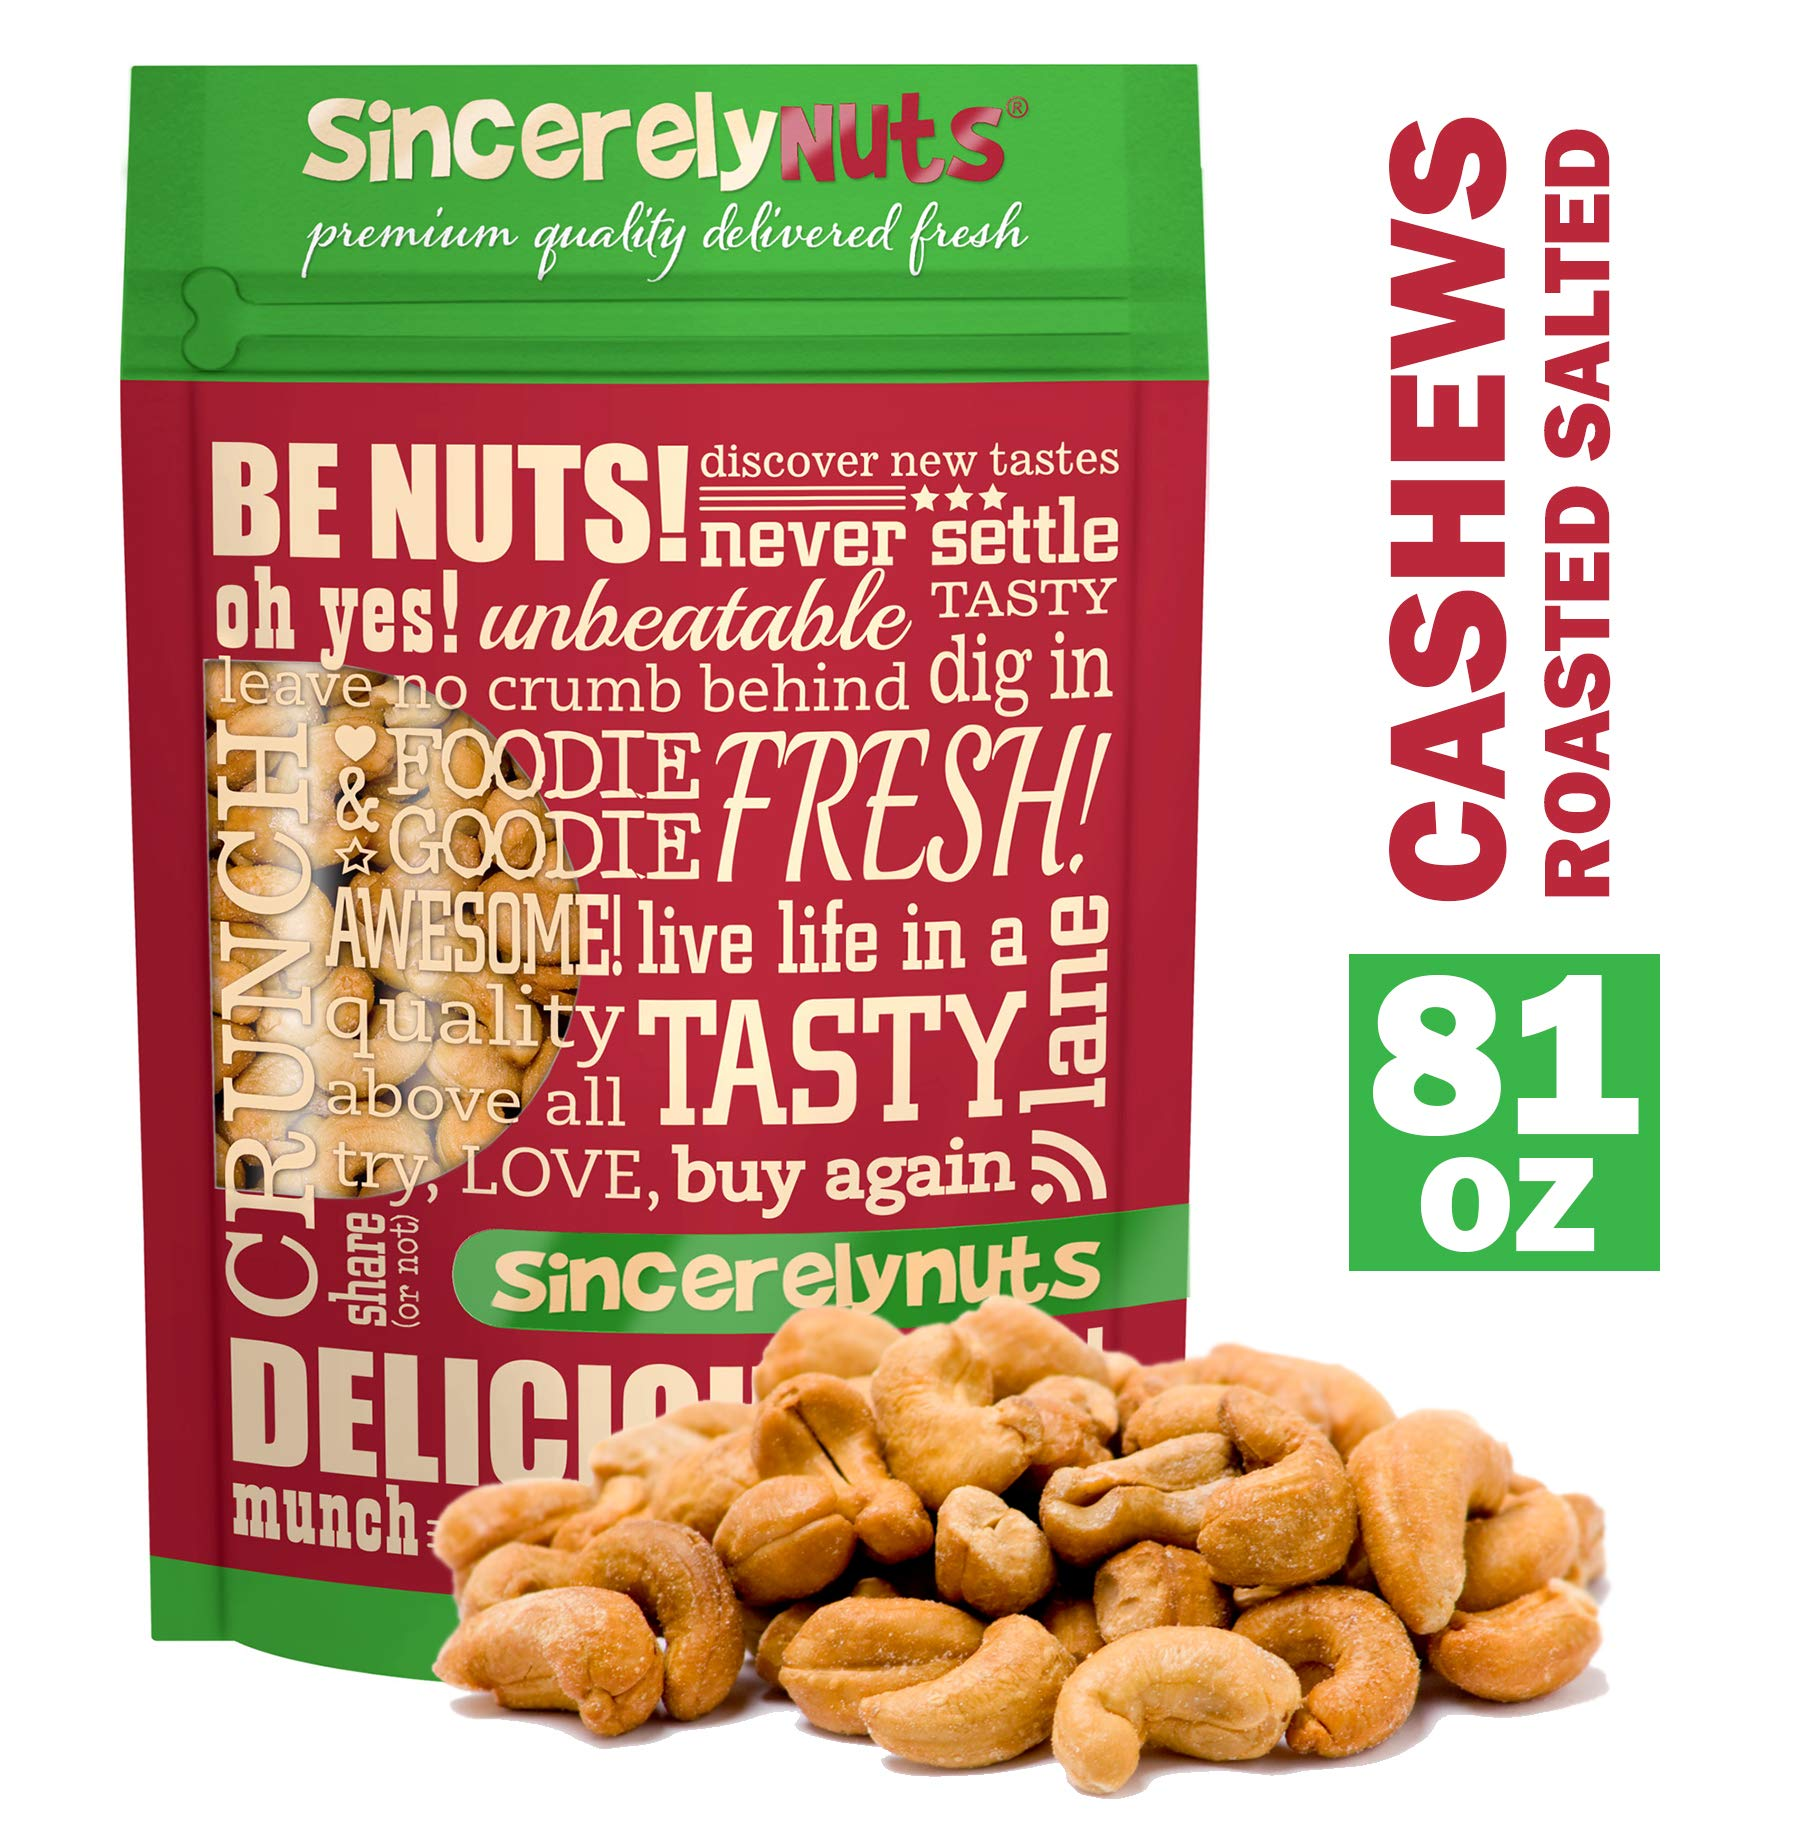 Sincerely Nuts - Whole Cashews Roasted and Salted | Five Lb. Bag | Deluxe Kosher Snack Food | Healthy Source of Protein, Vitamin & Mineral Nutritional Content | Gourmet Quality Vegan Cashew Nut by Sincerely Nuts